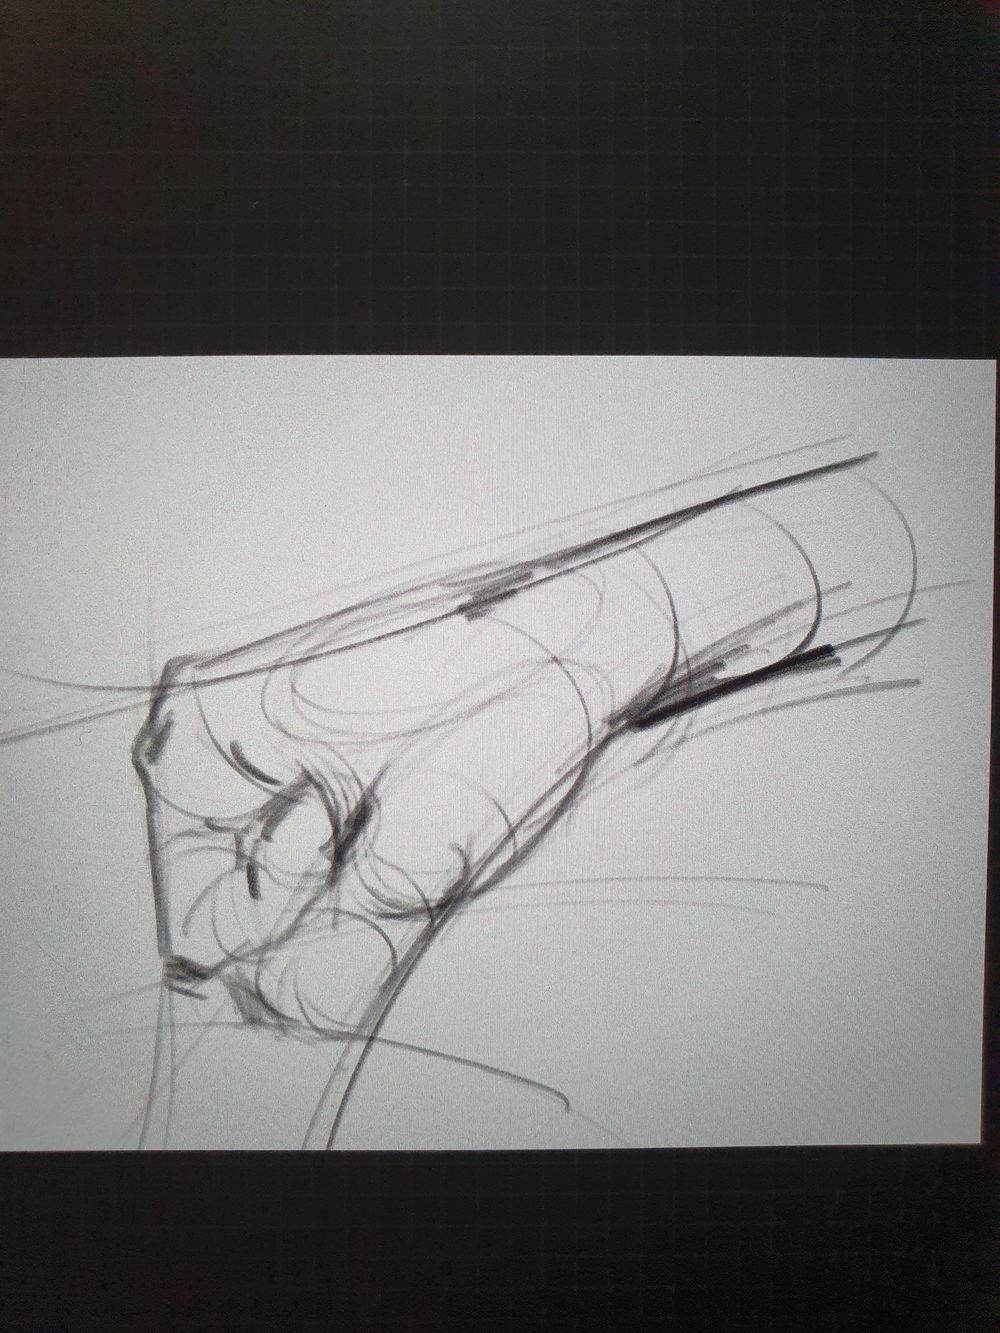 Drawing Session - image 3 - student project